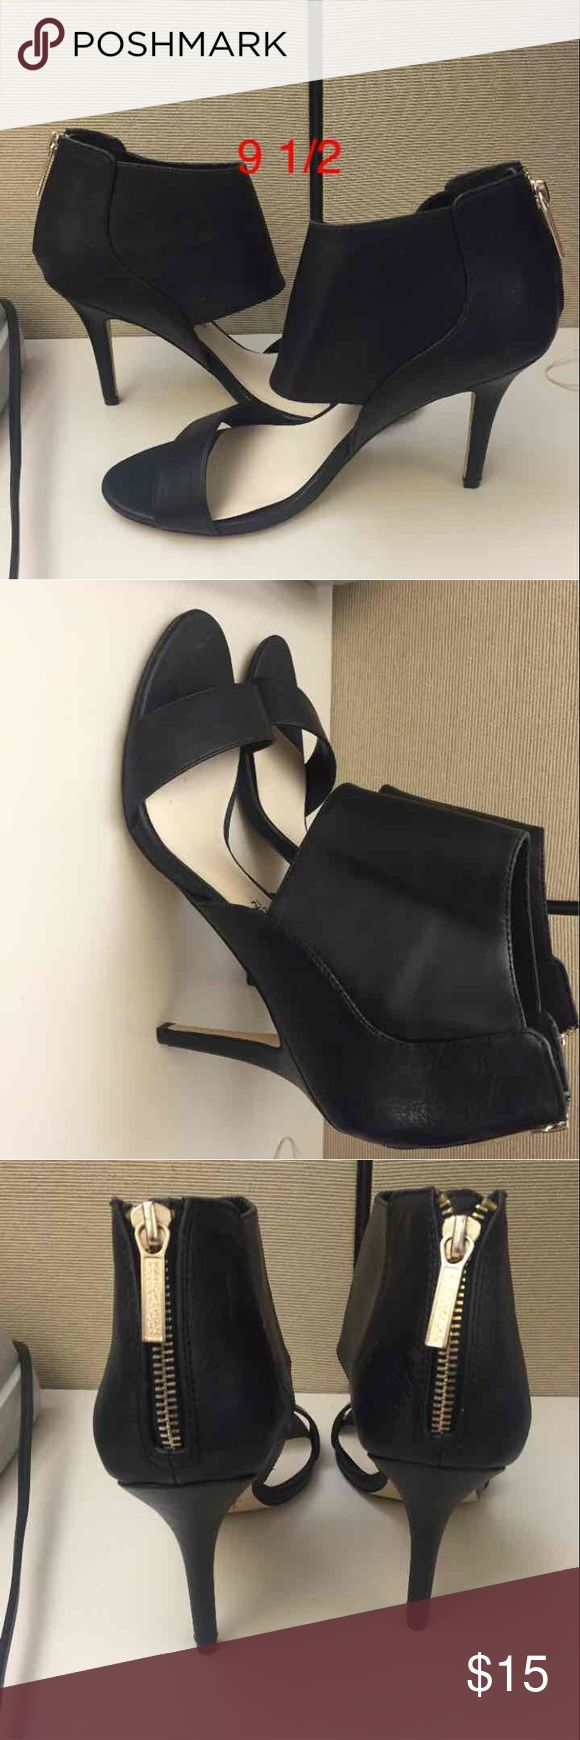 Kardashian kollection black heels 9.5 9 1/2 Very nice , only worn a few times size 9.5. I offer a 20 percent discount when you bundle 2 or more items. Please submit all offers through the offer button. Kardashian Kollection Shoes Heels